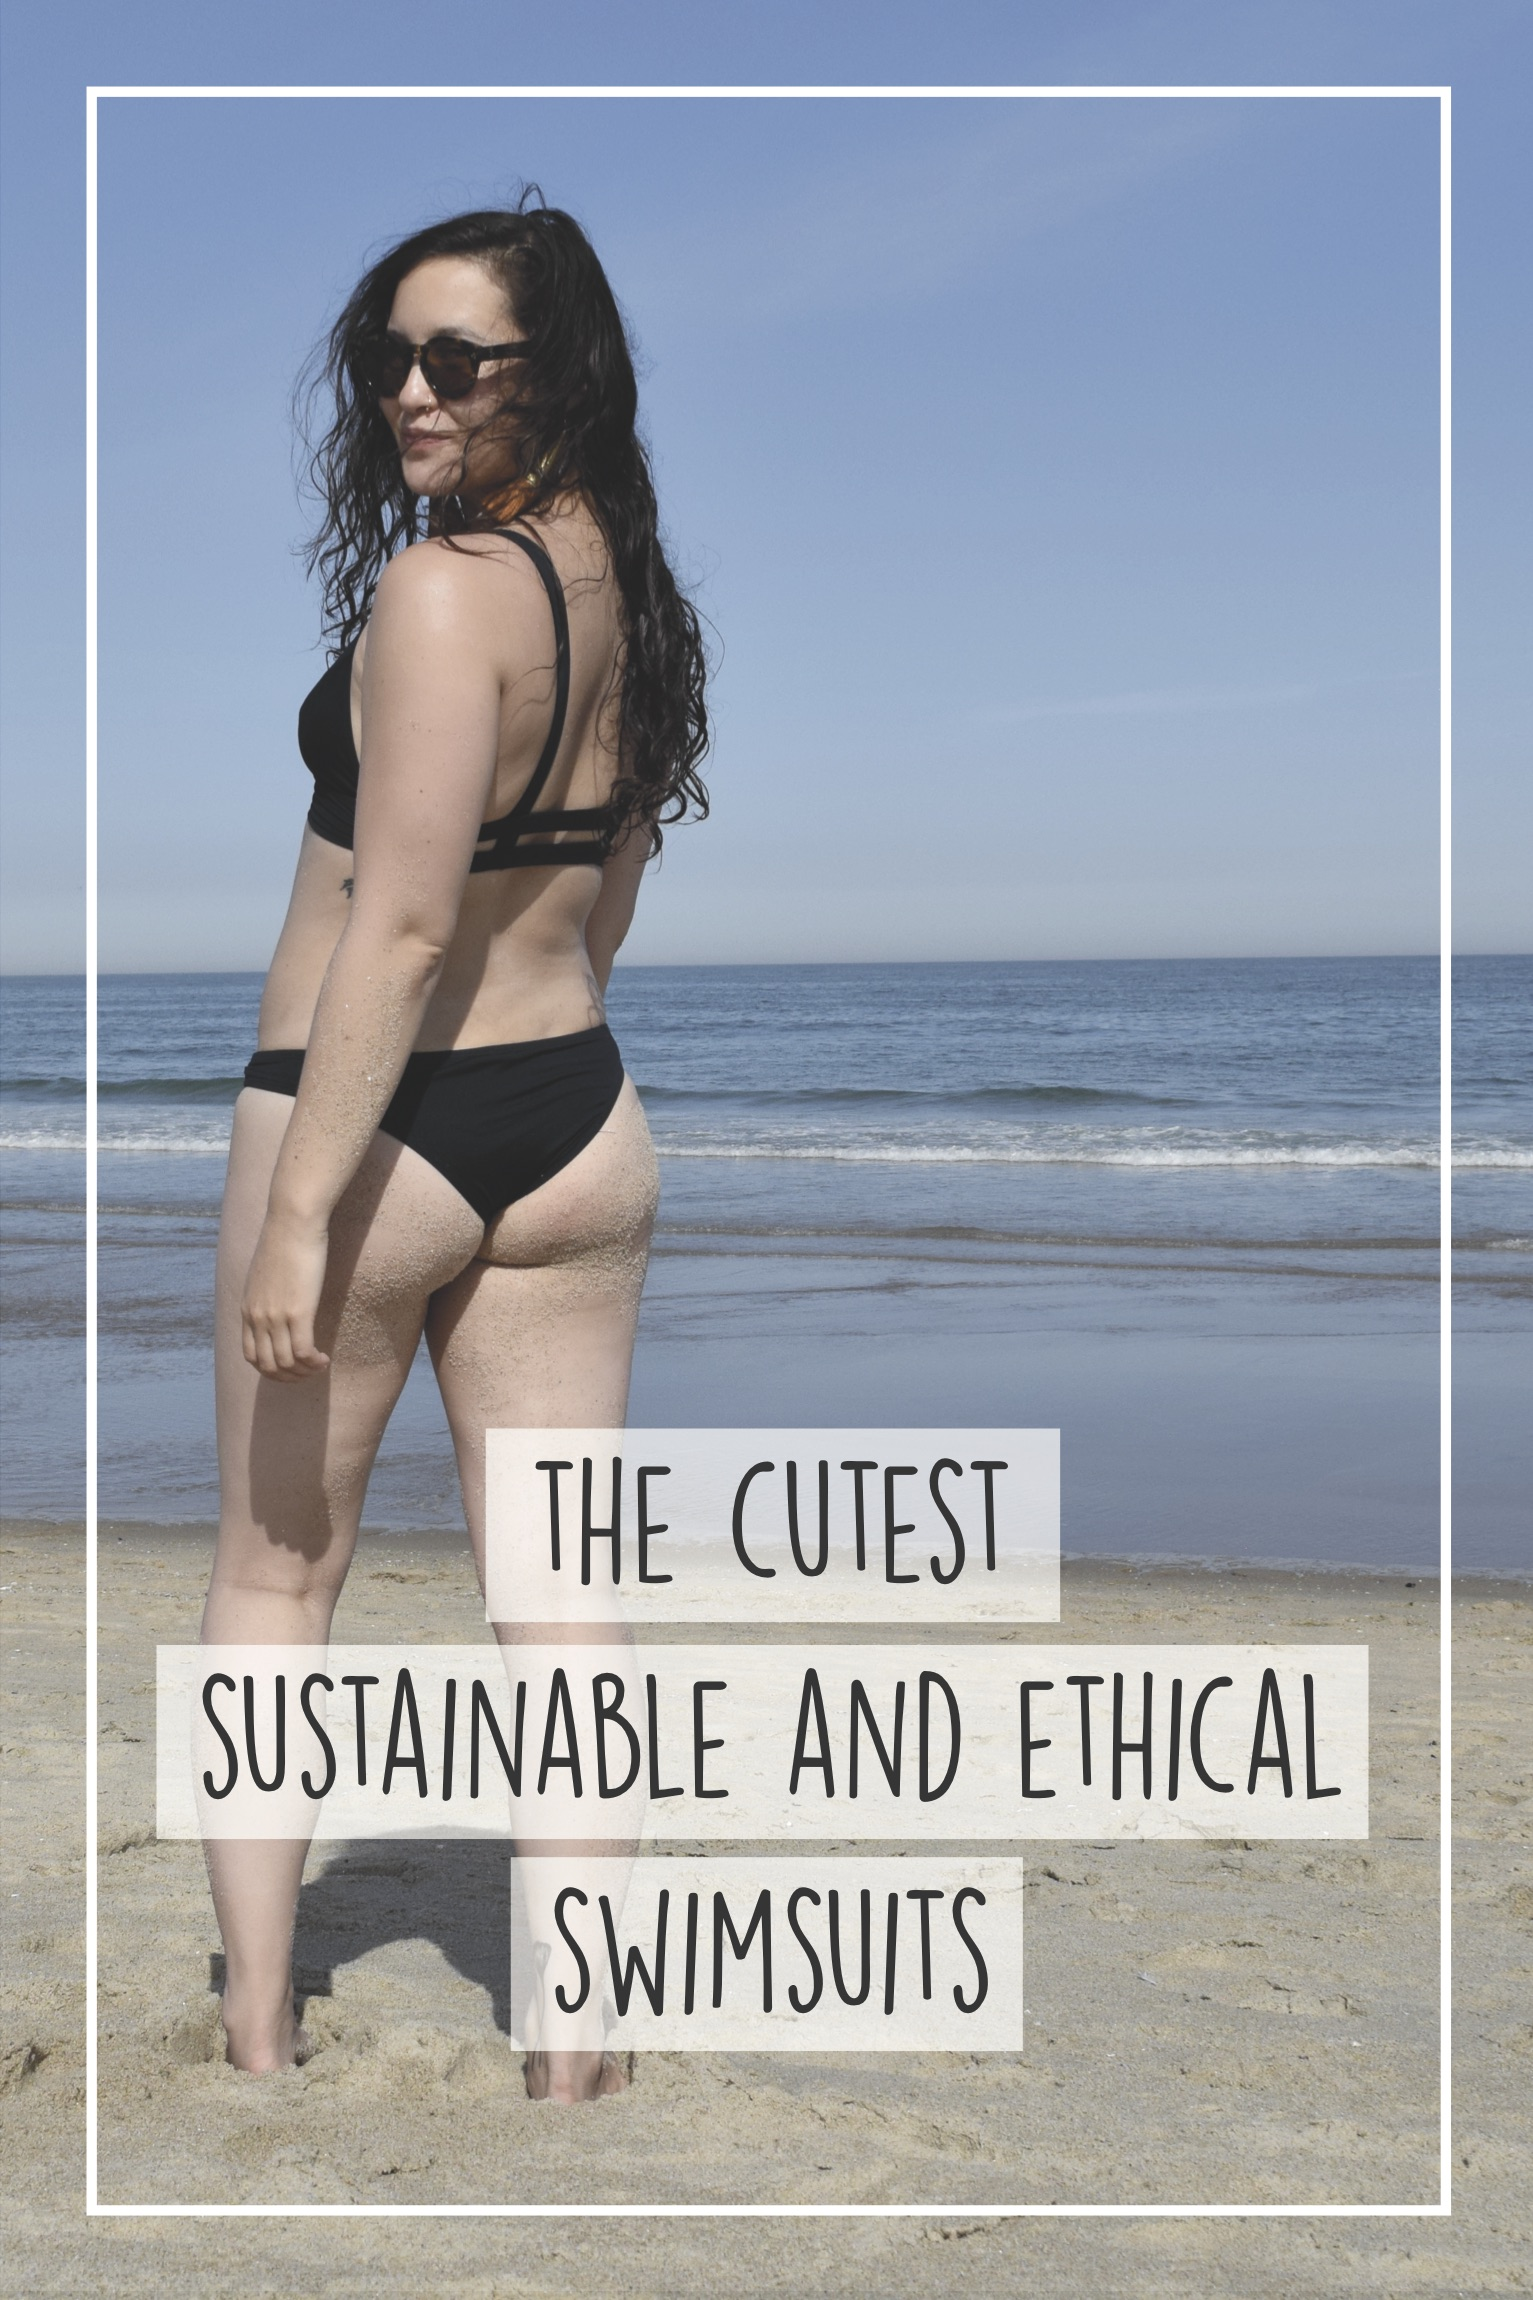 df57fed97e3 sustainable and ethical swimsuits, recycled plastic, eco friendly bathing  suit